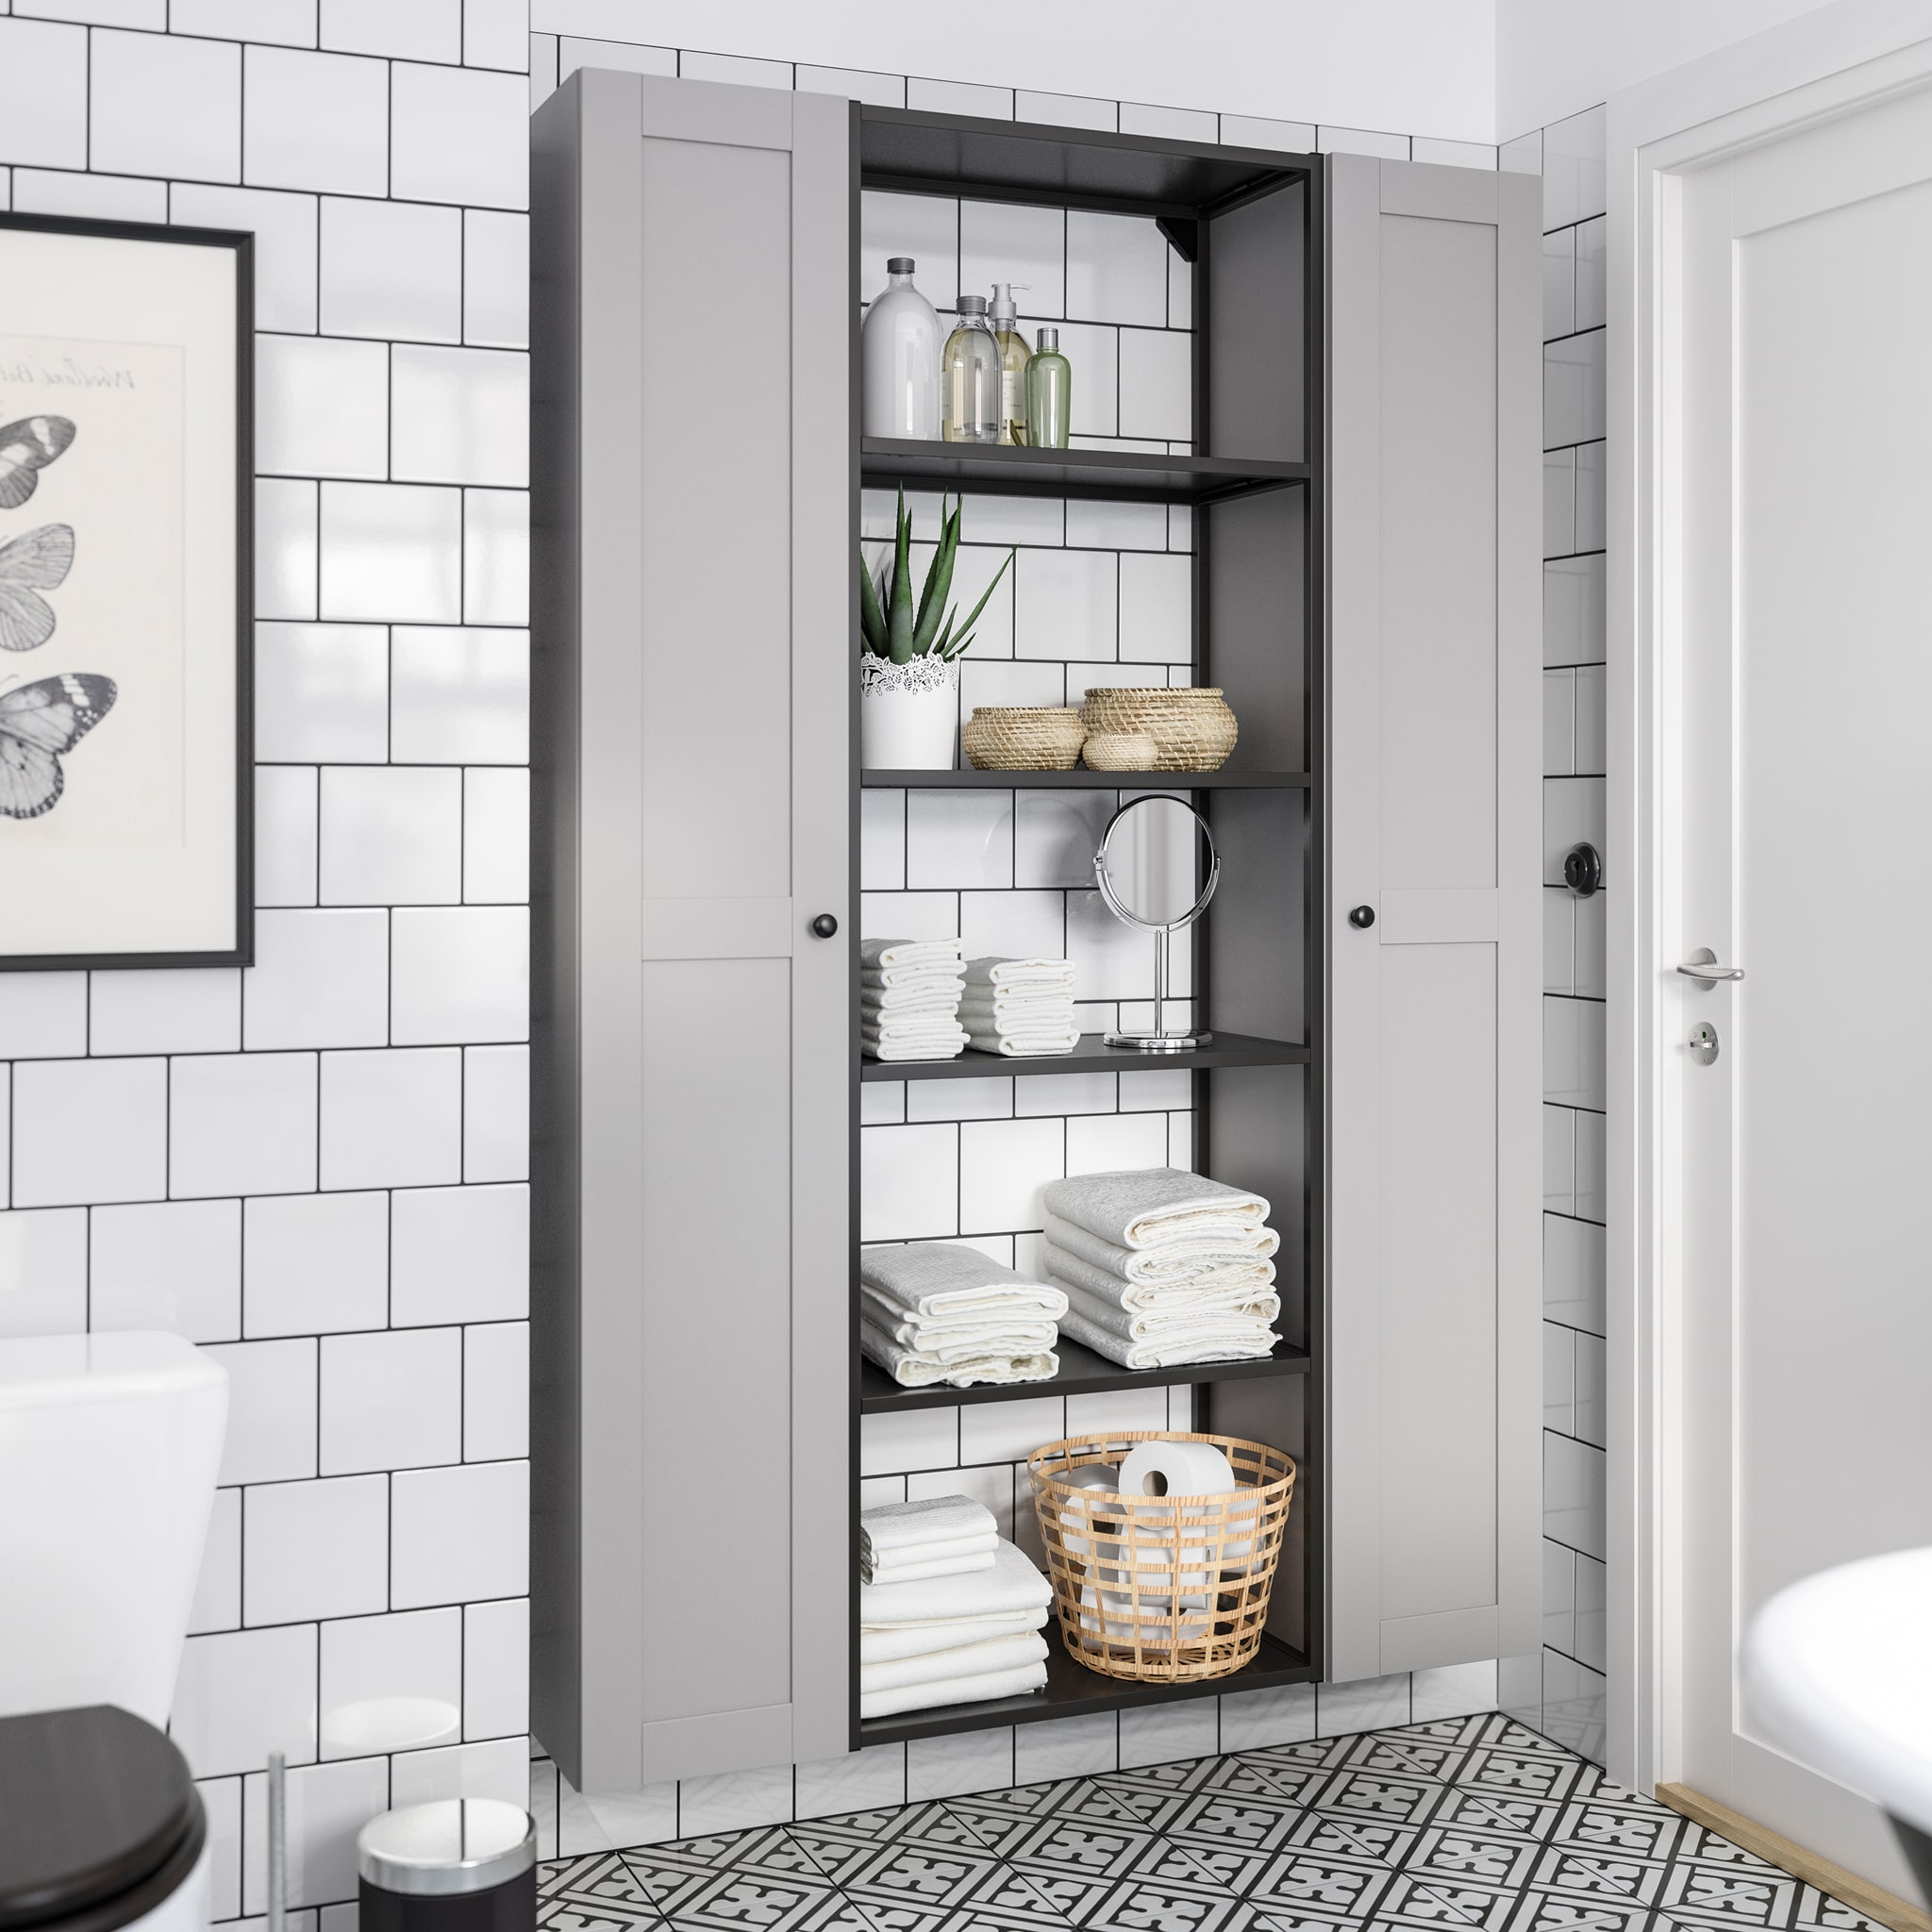 White-tiled bathroom with a storage unit that consists of two grey high cabinets and a frame with shelves in anthracite.